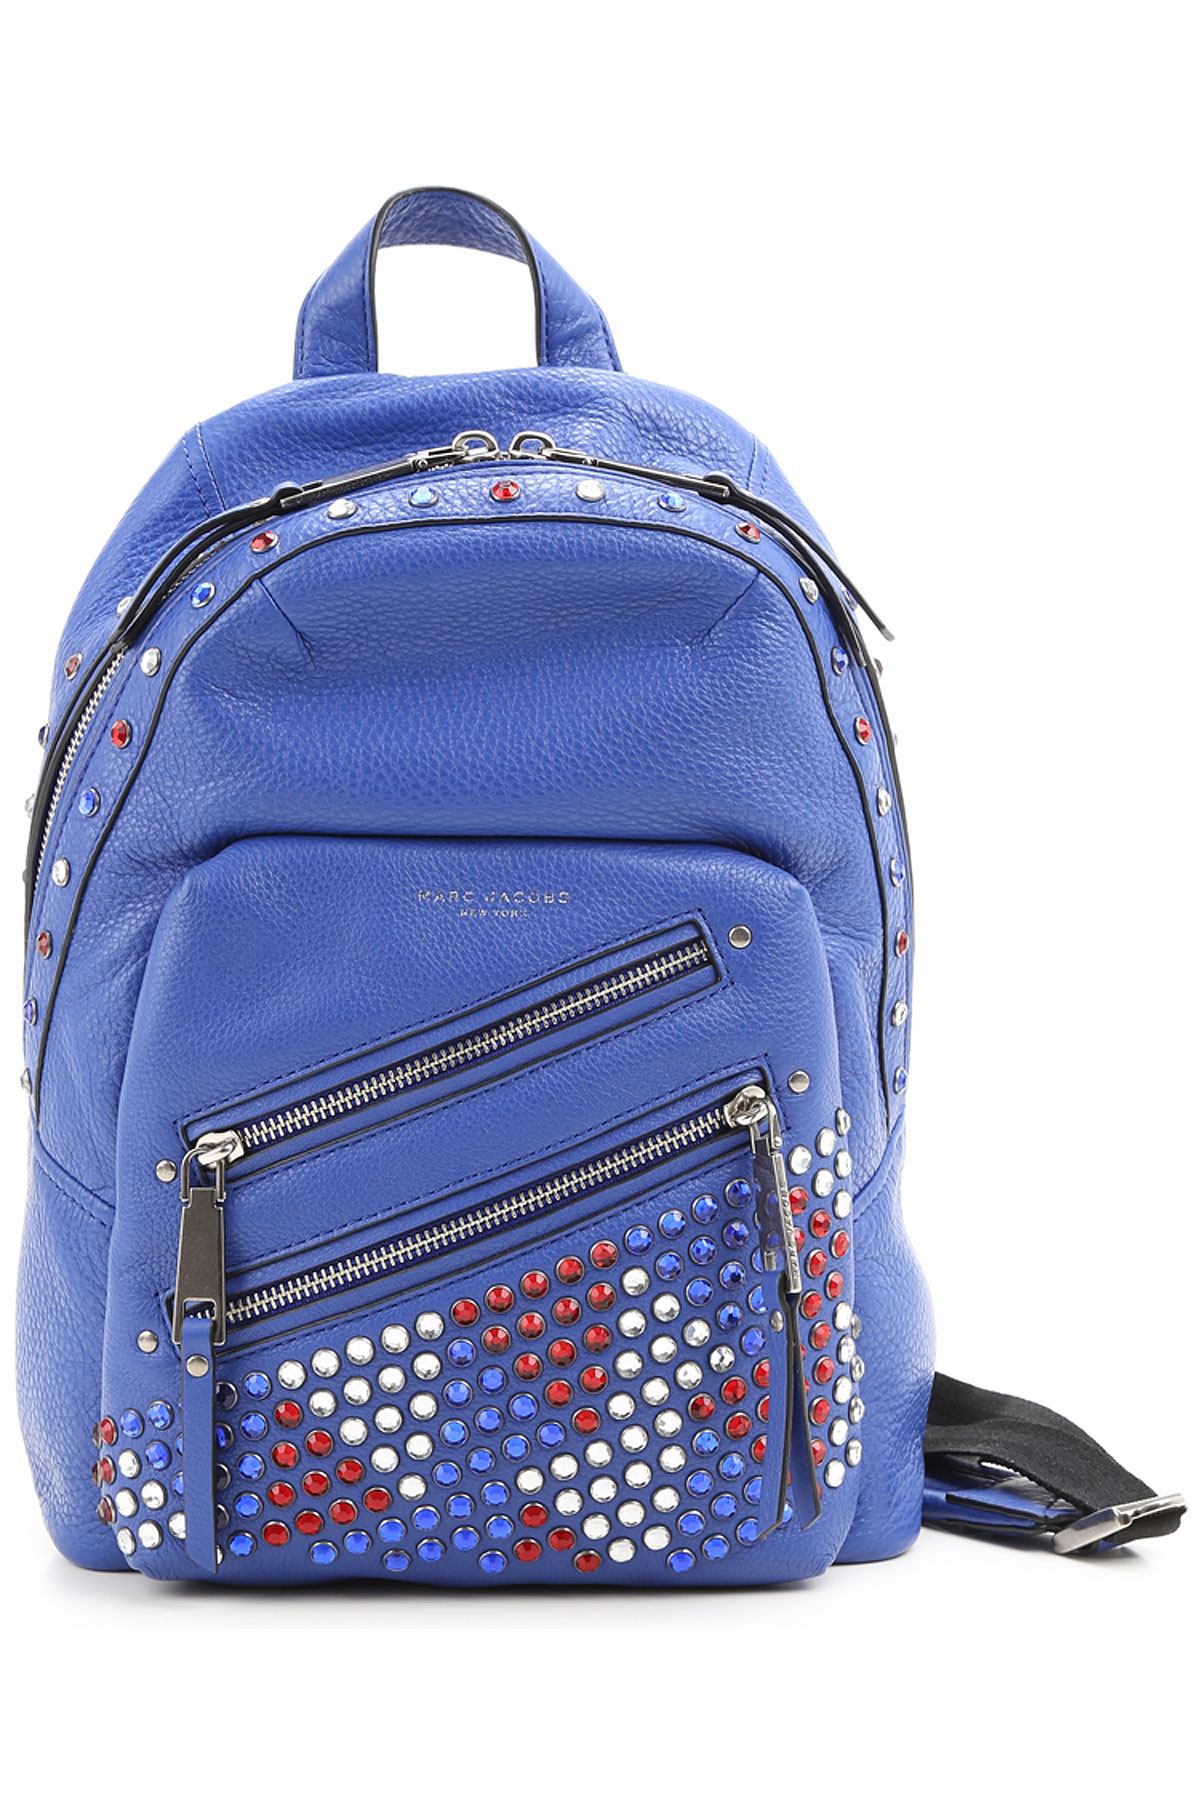 Marc Jacobs Backpack for Women, Blue, Leather, 2017 USA-362742